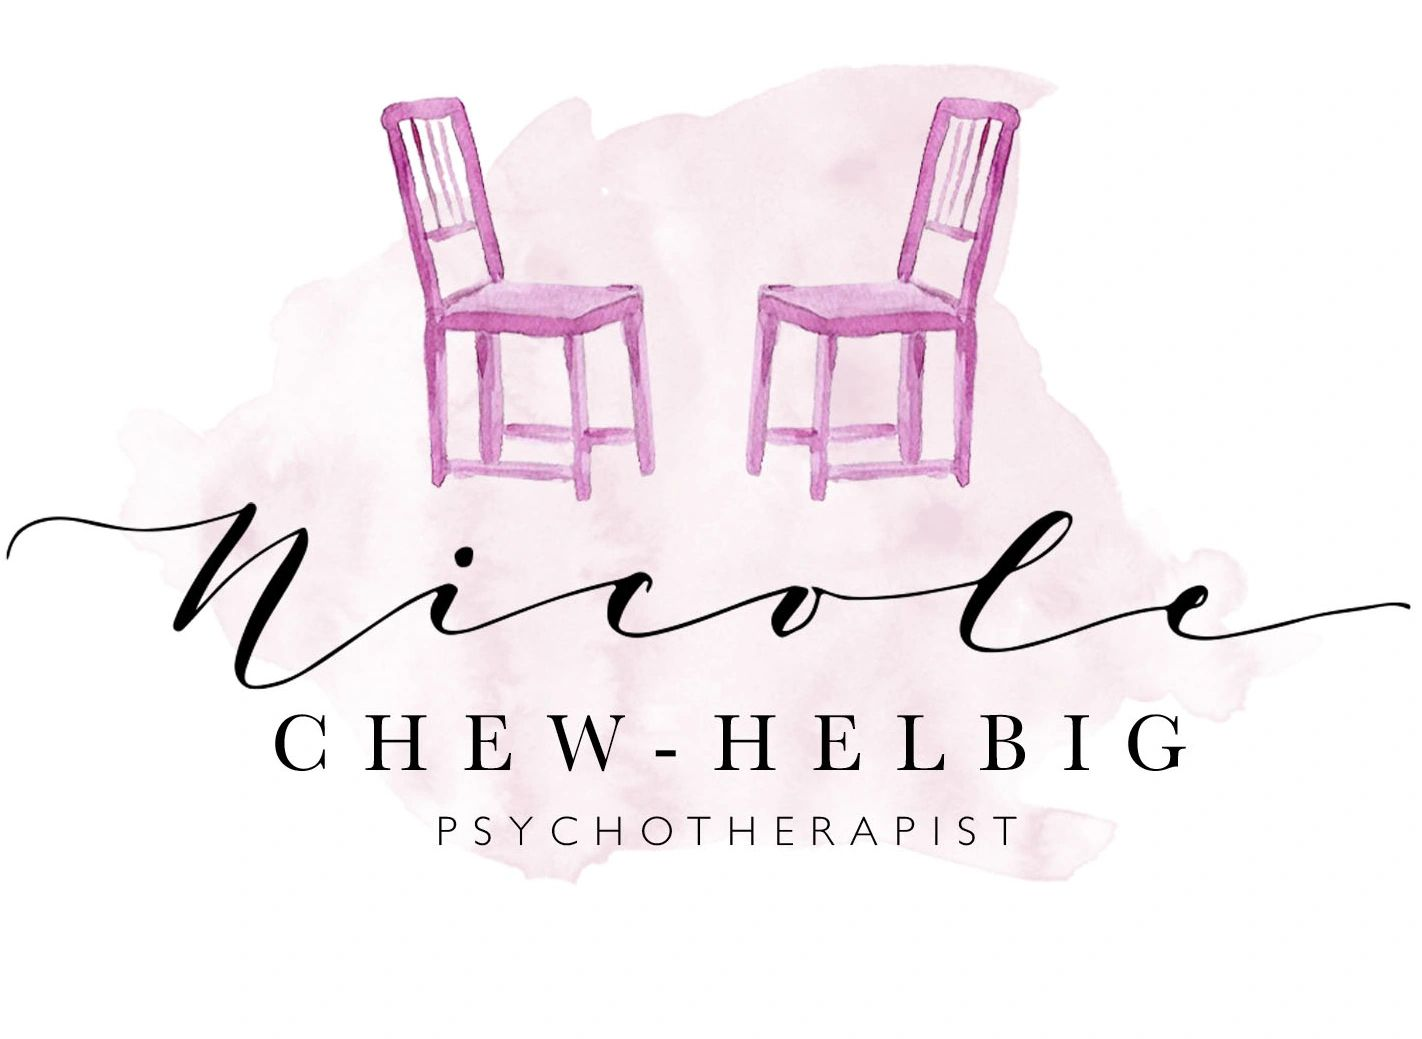 Gestalt Psychotherapy Singapore empty chair watercolor logo in pink.